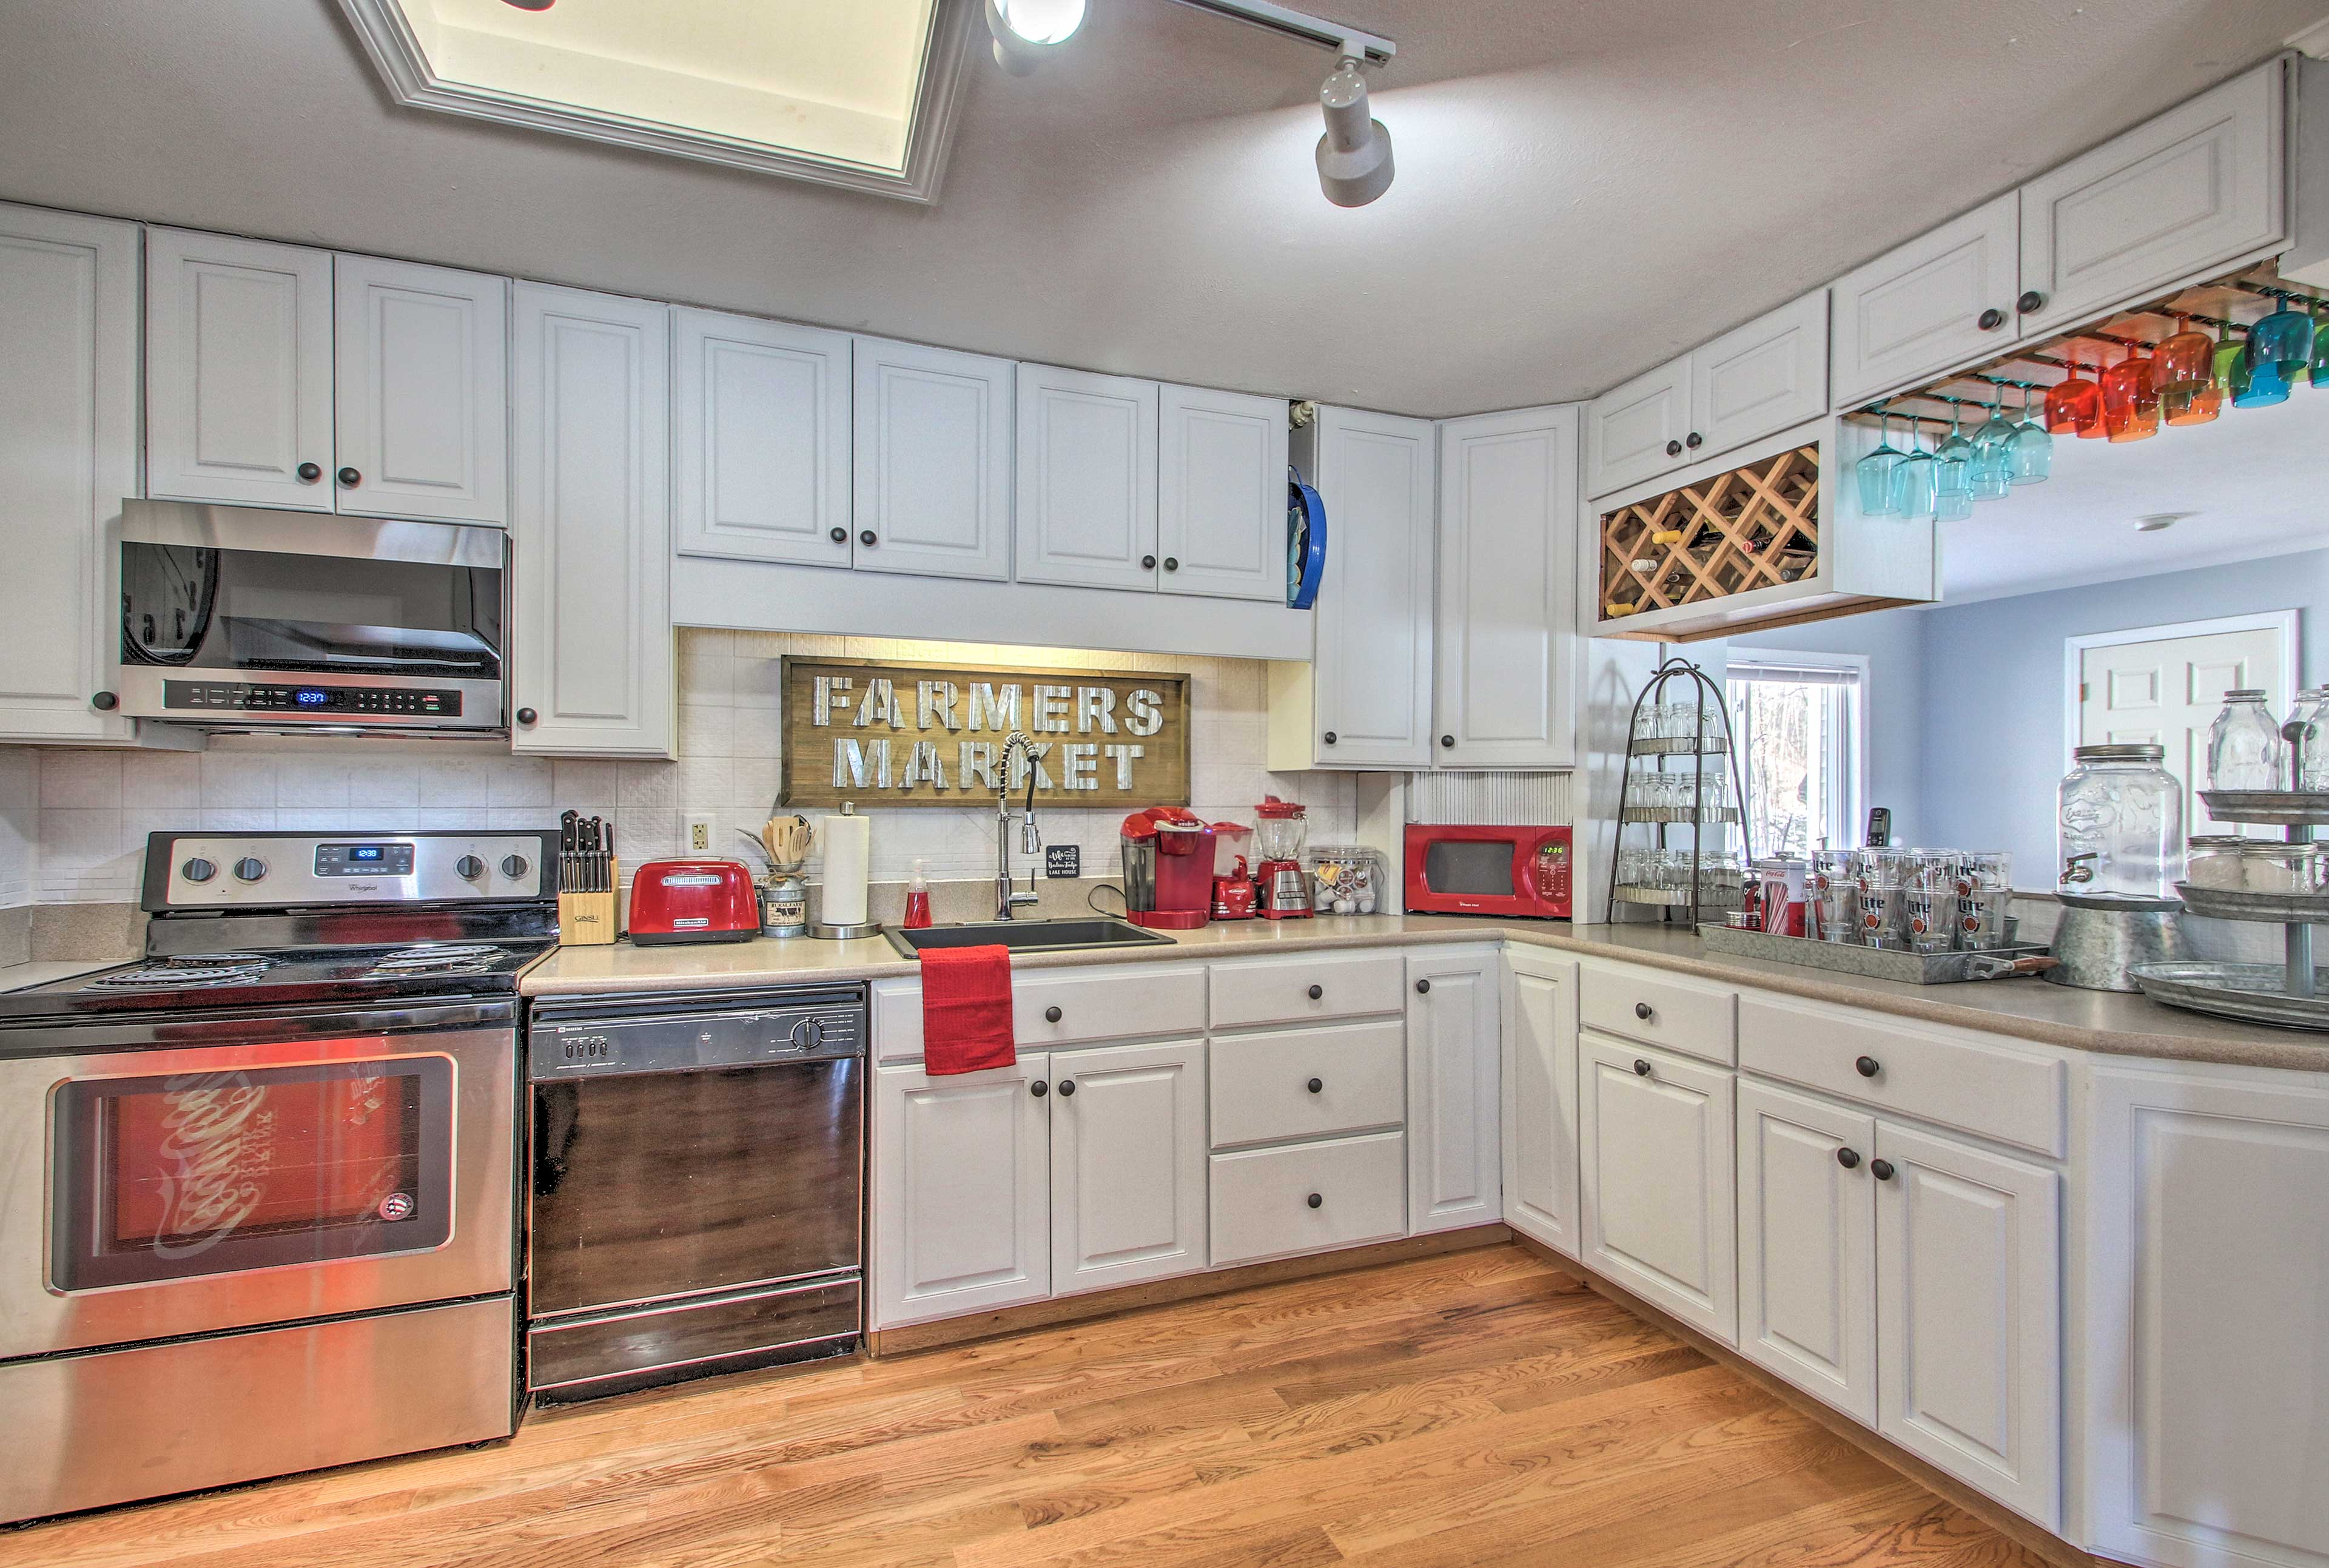 You'll find everything you need for long stays in this kitchen.